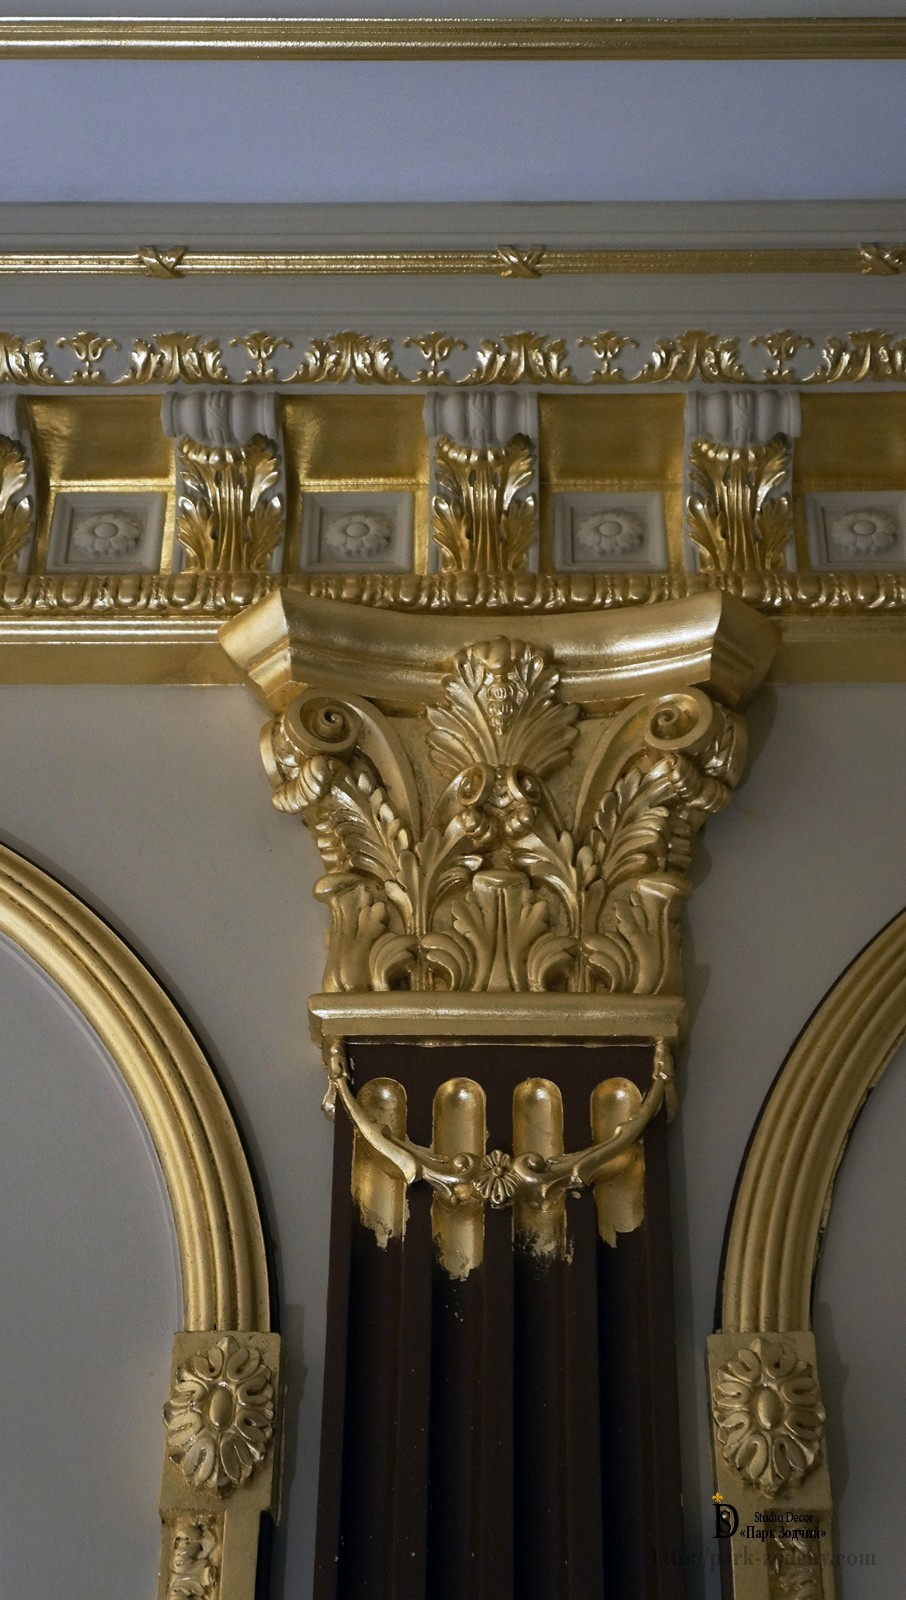 The gilding of the capitals in a classic interior